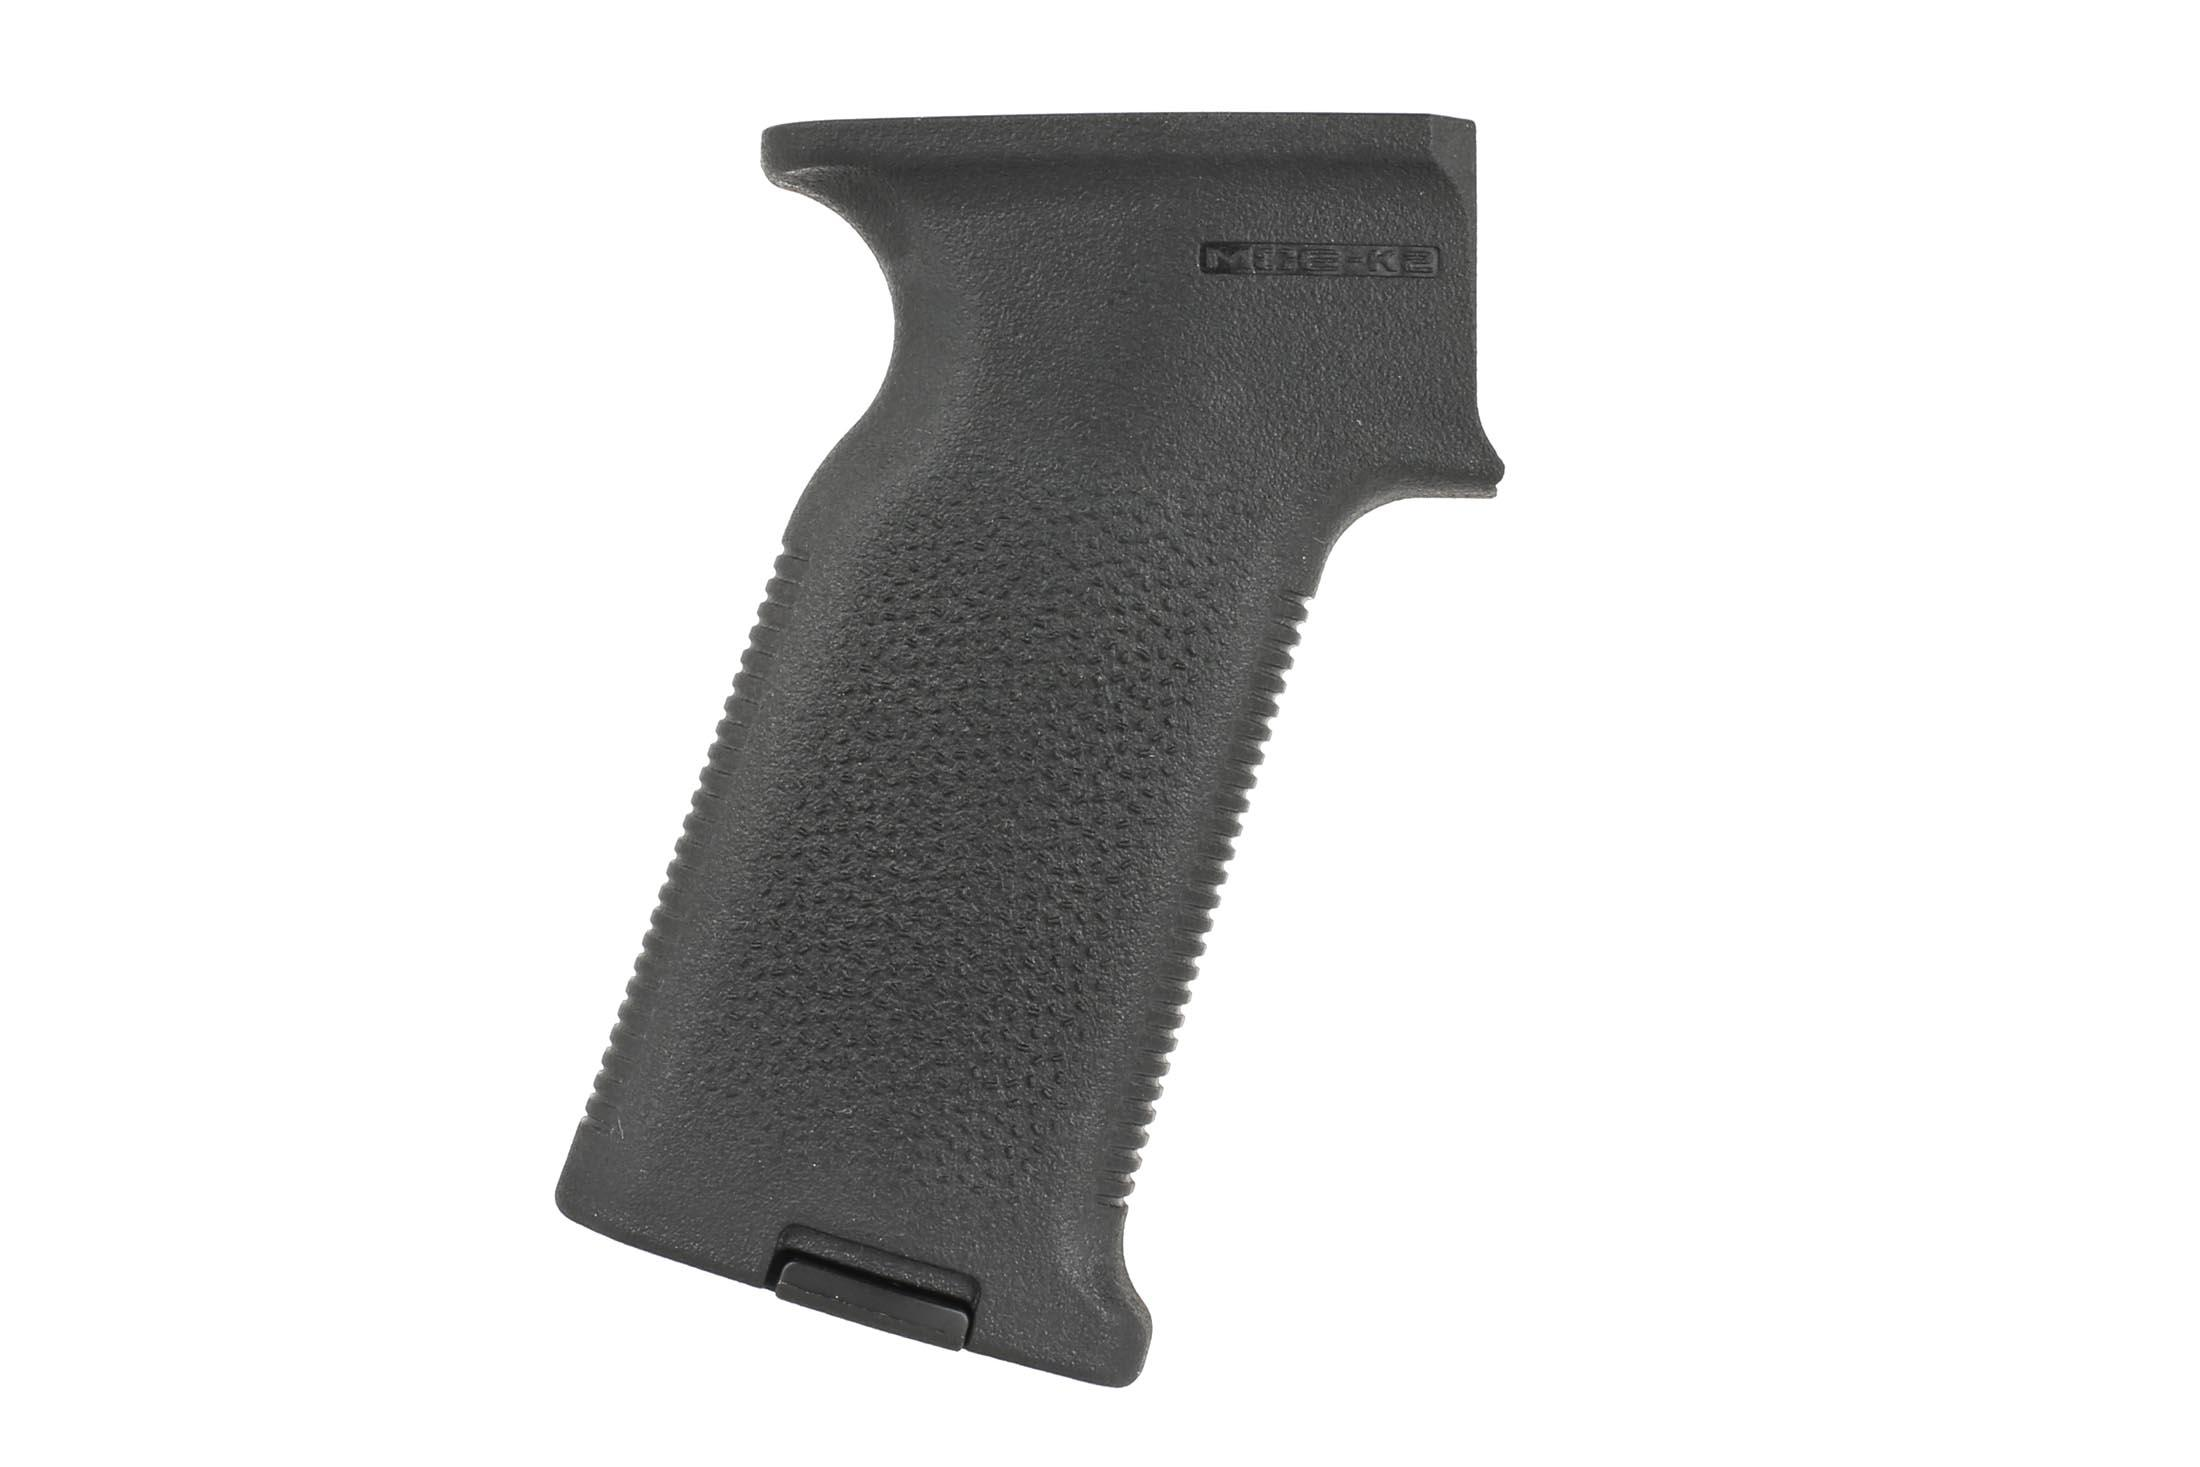 The Magpul MOE-K2 AK47 pistol grip features a textured surface